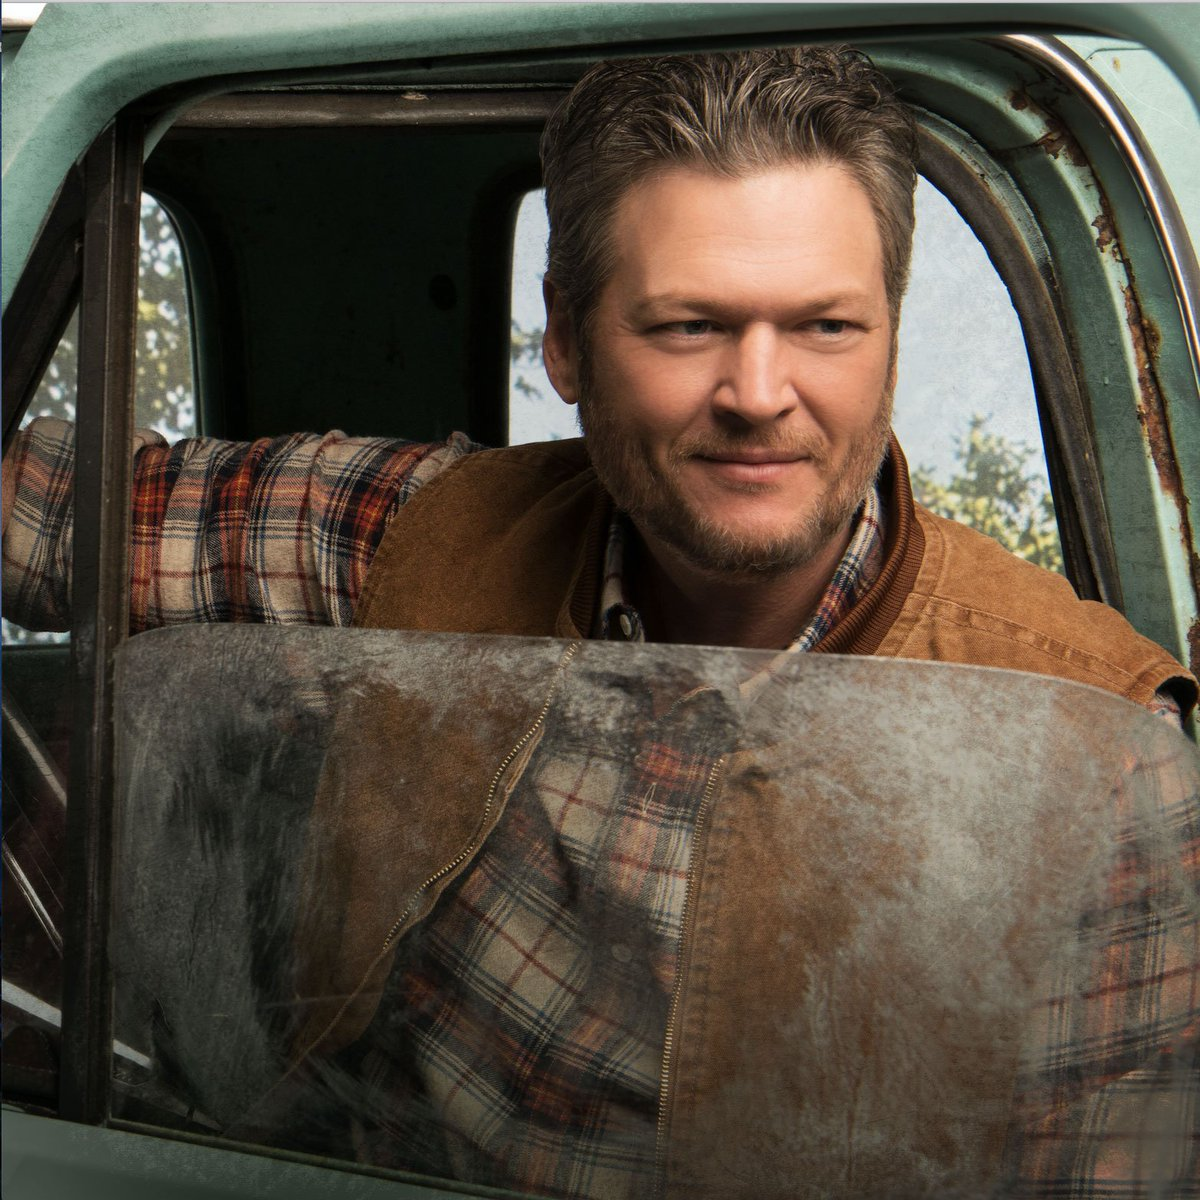 .@blakeshelton Reveals 'Fully Loaded' Album Details ow.ly/87YO50wTbRH